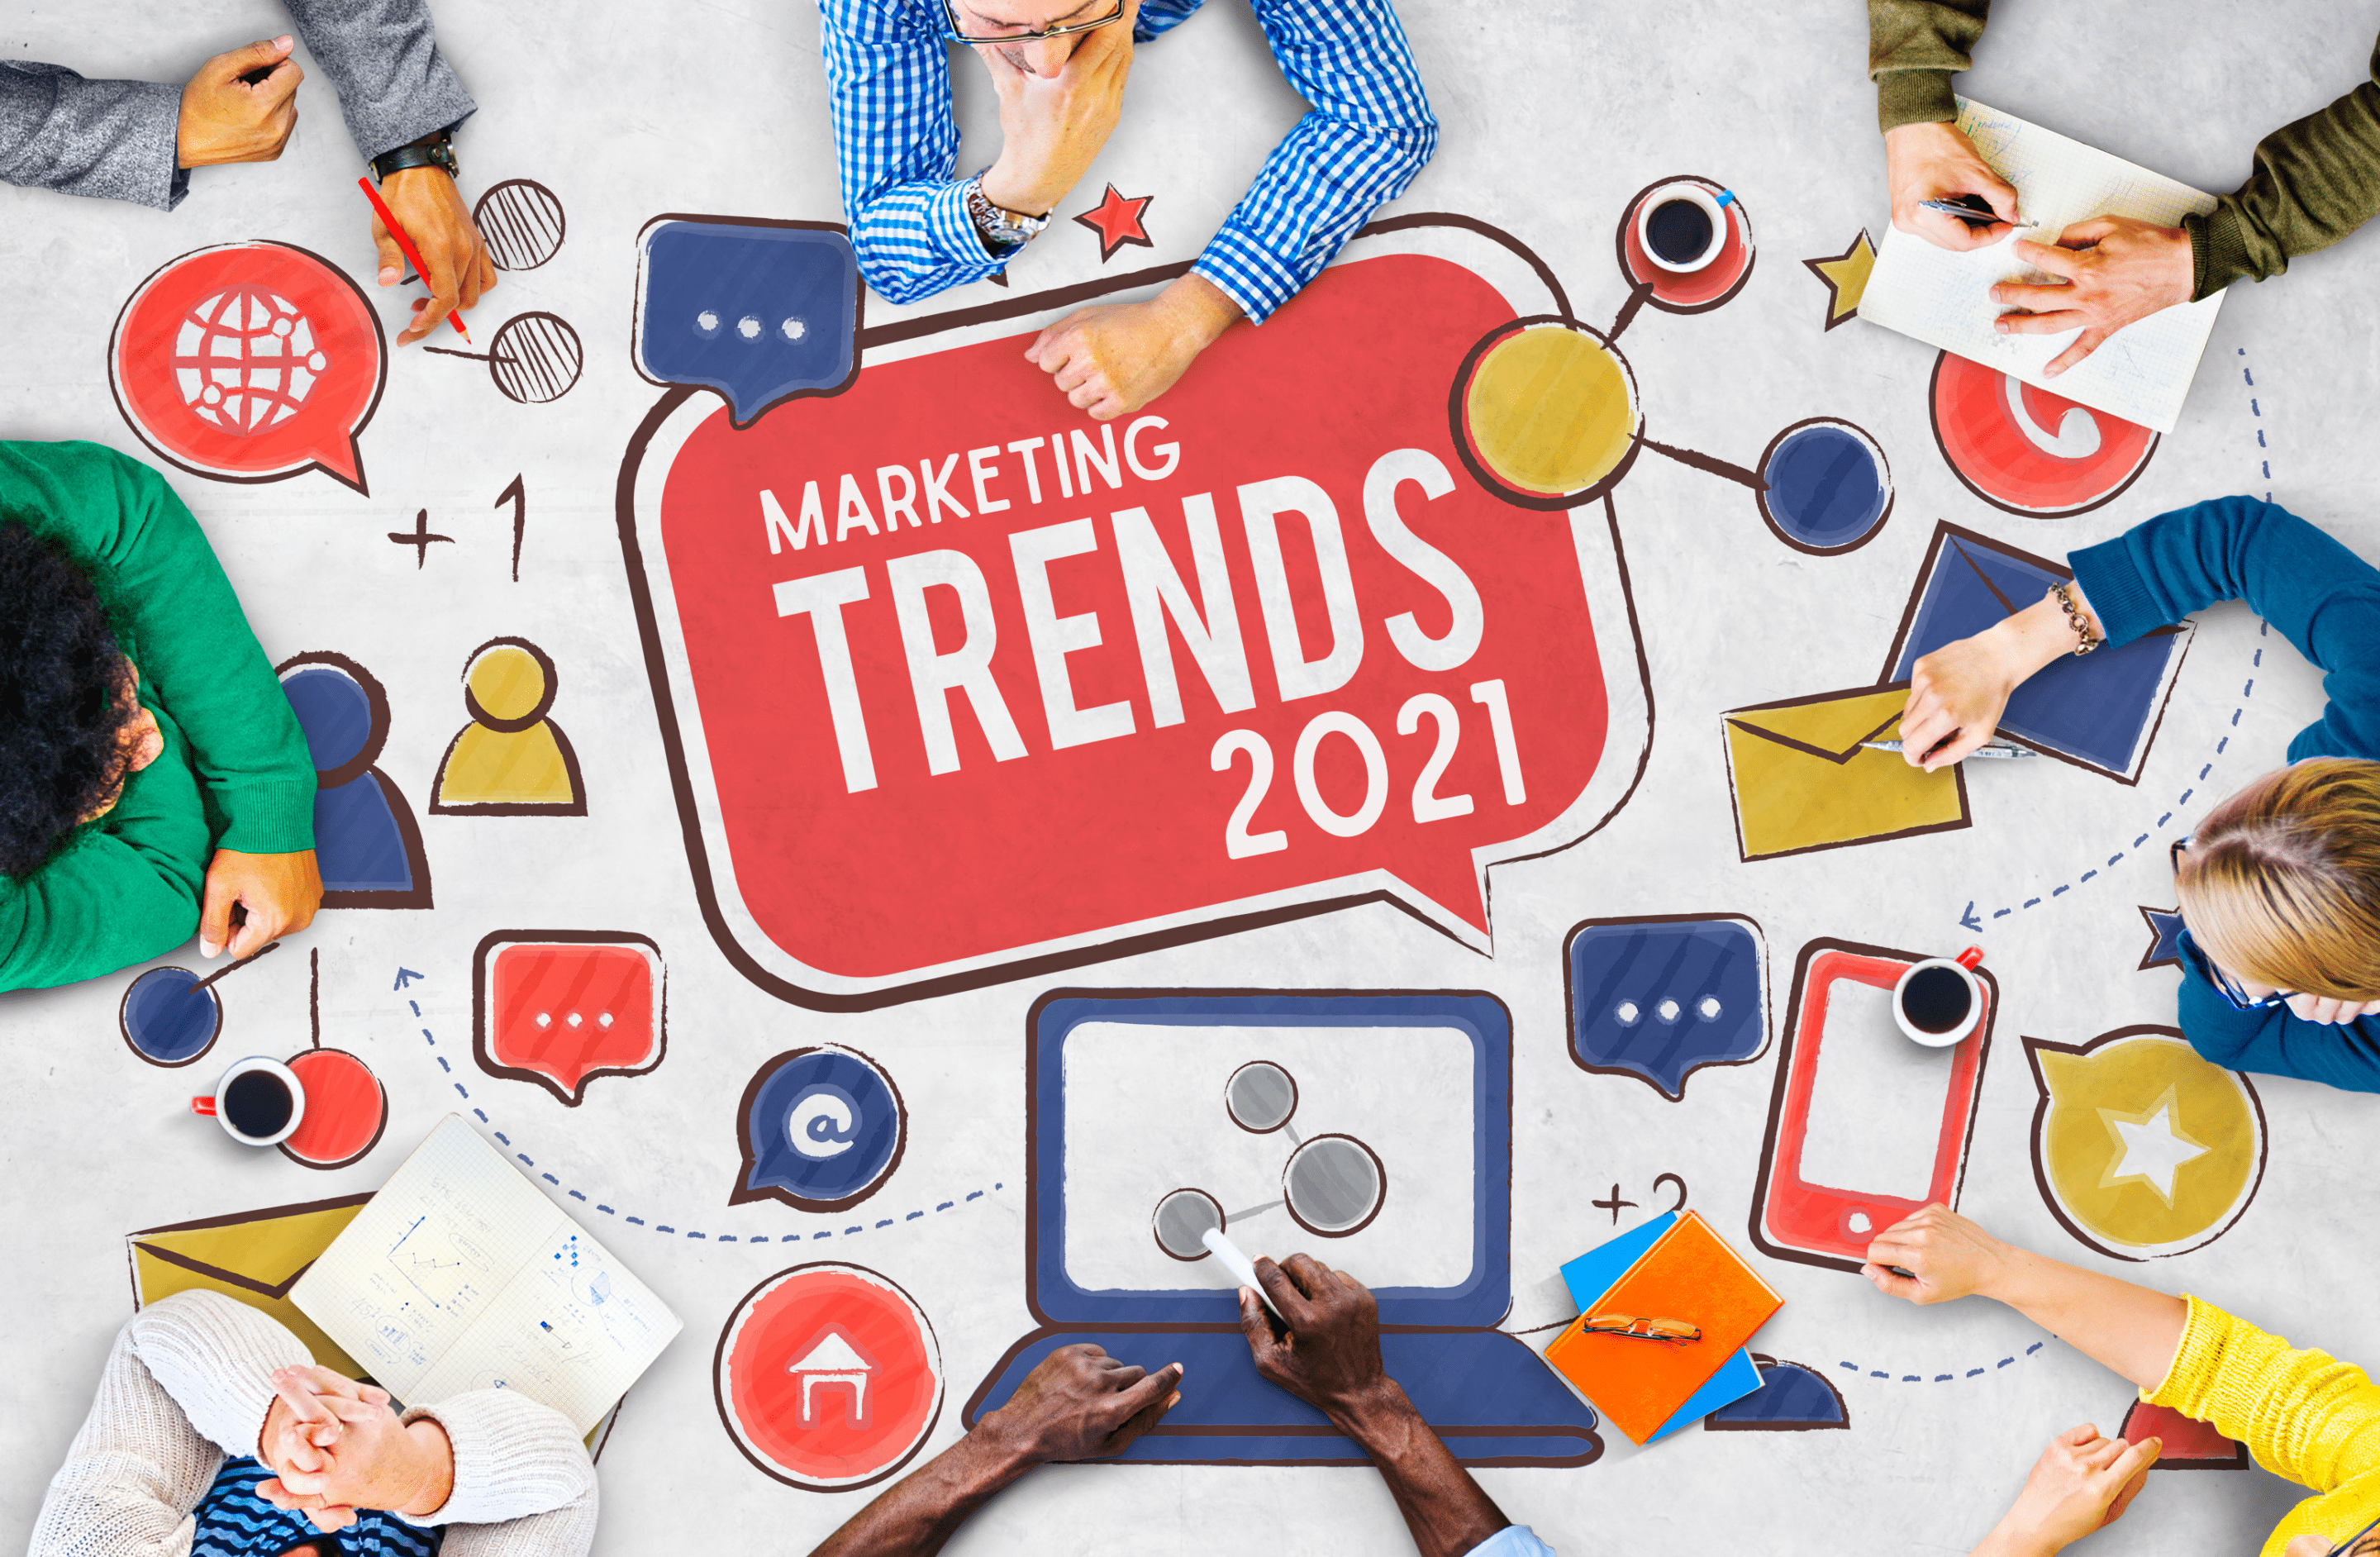 New 2021 Marketing Trends and How To Make Your Marketing Strategy Strong